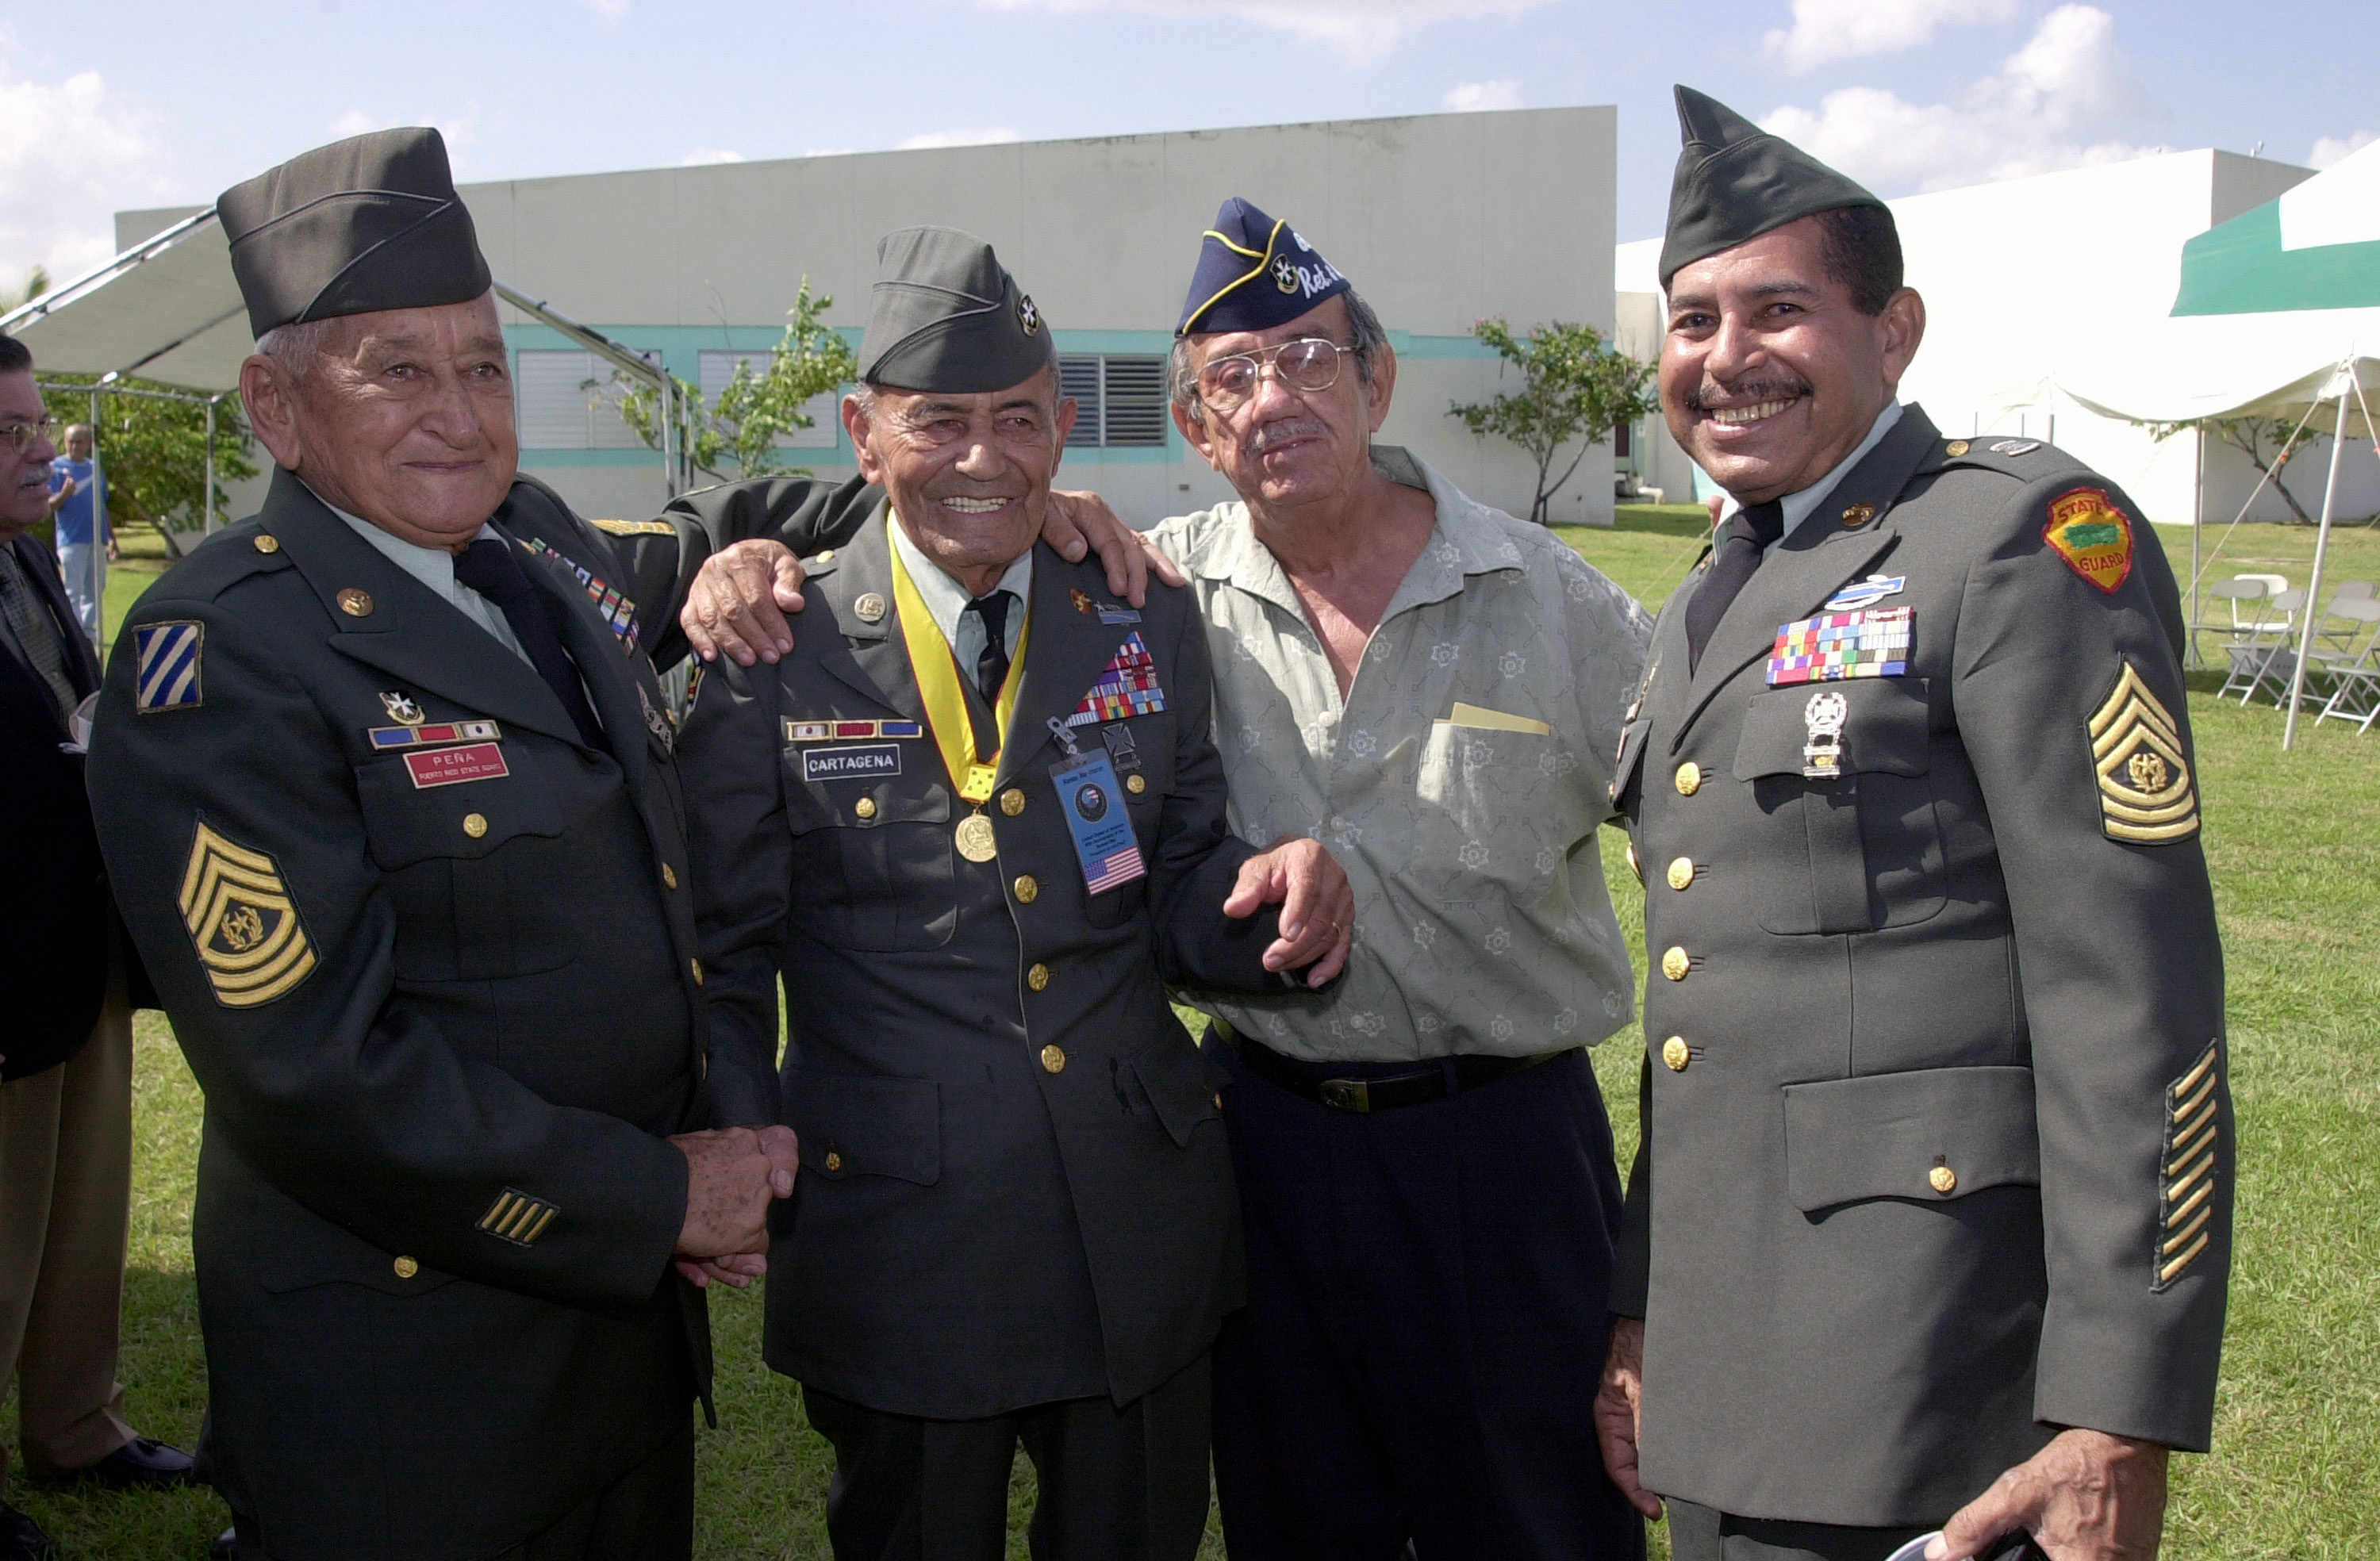 Hispanics in the military